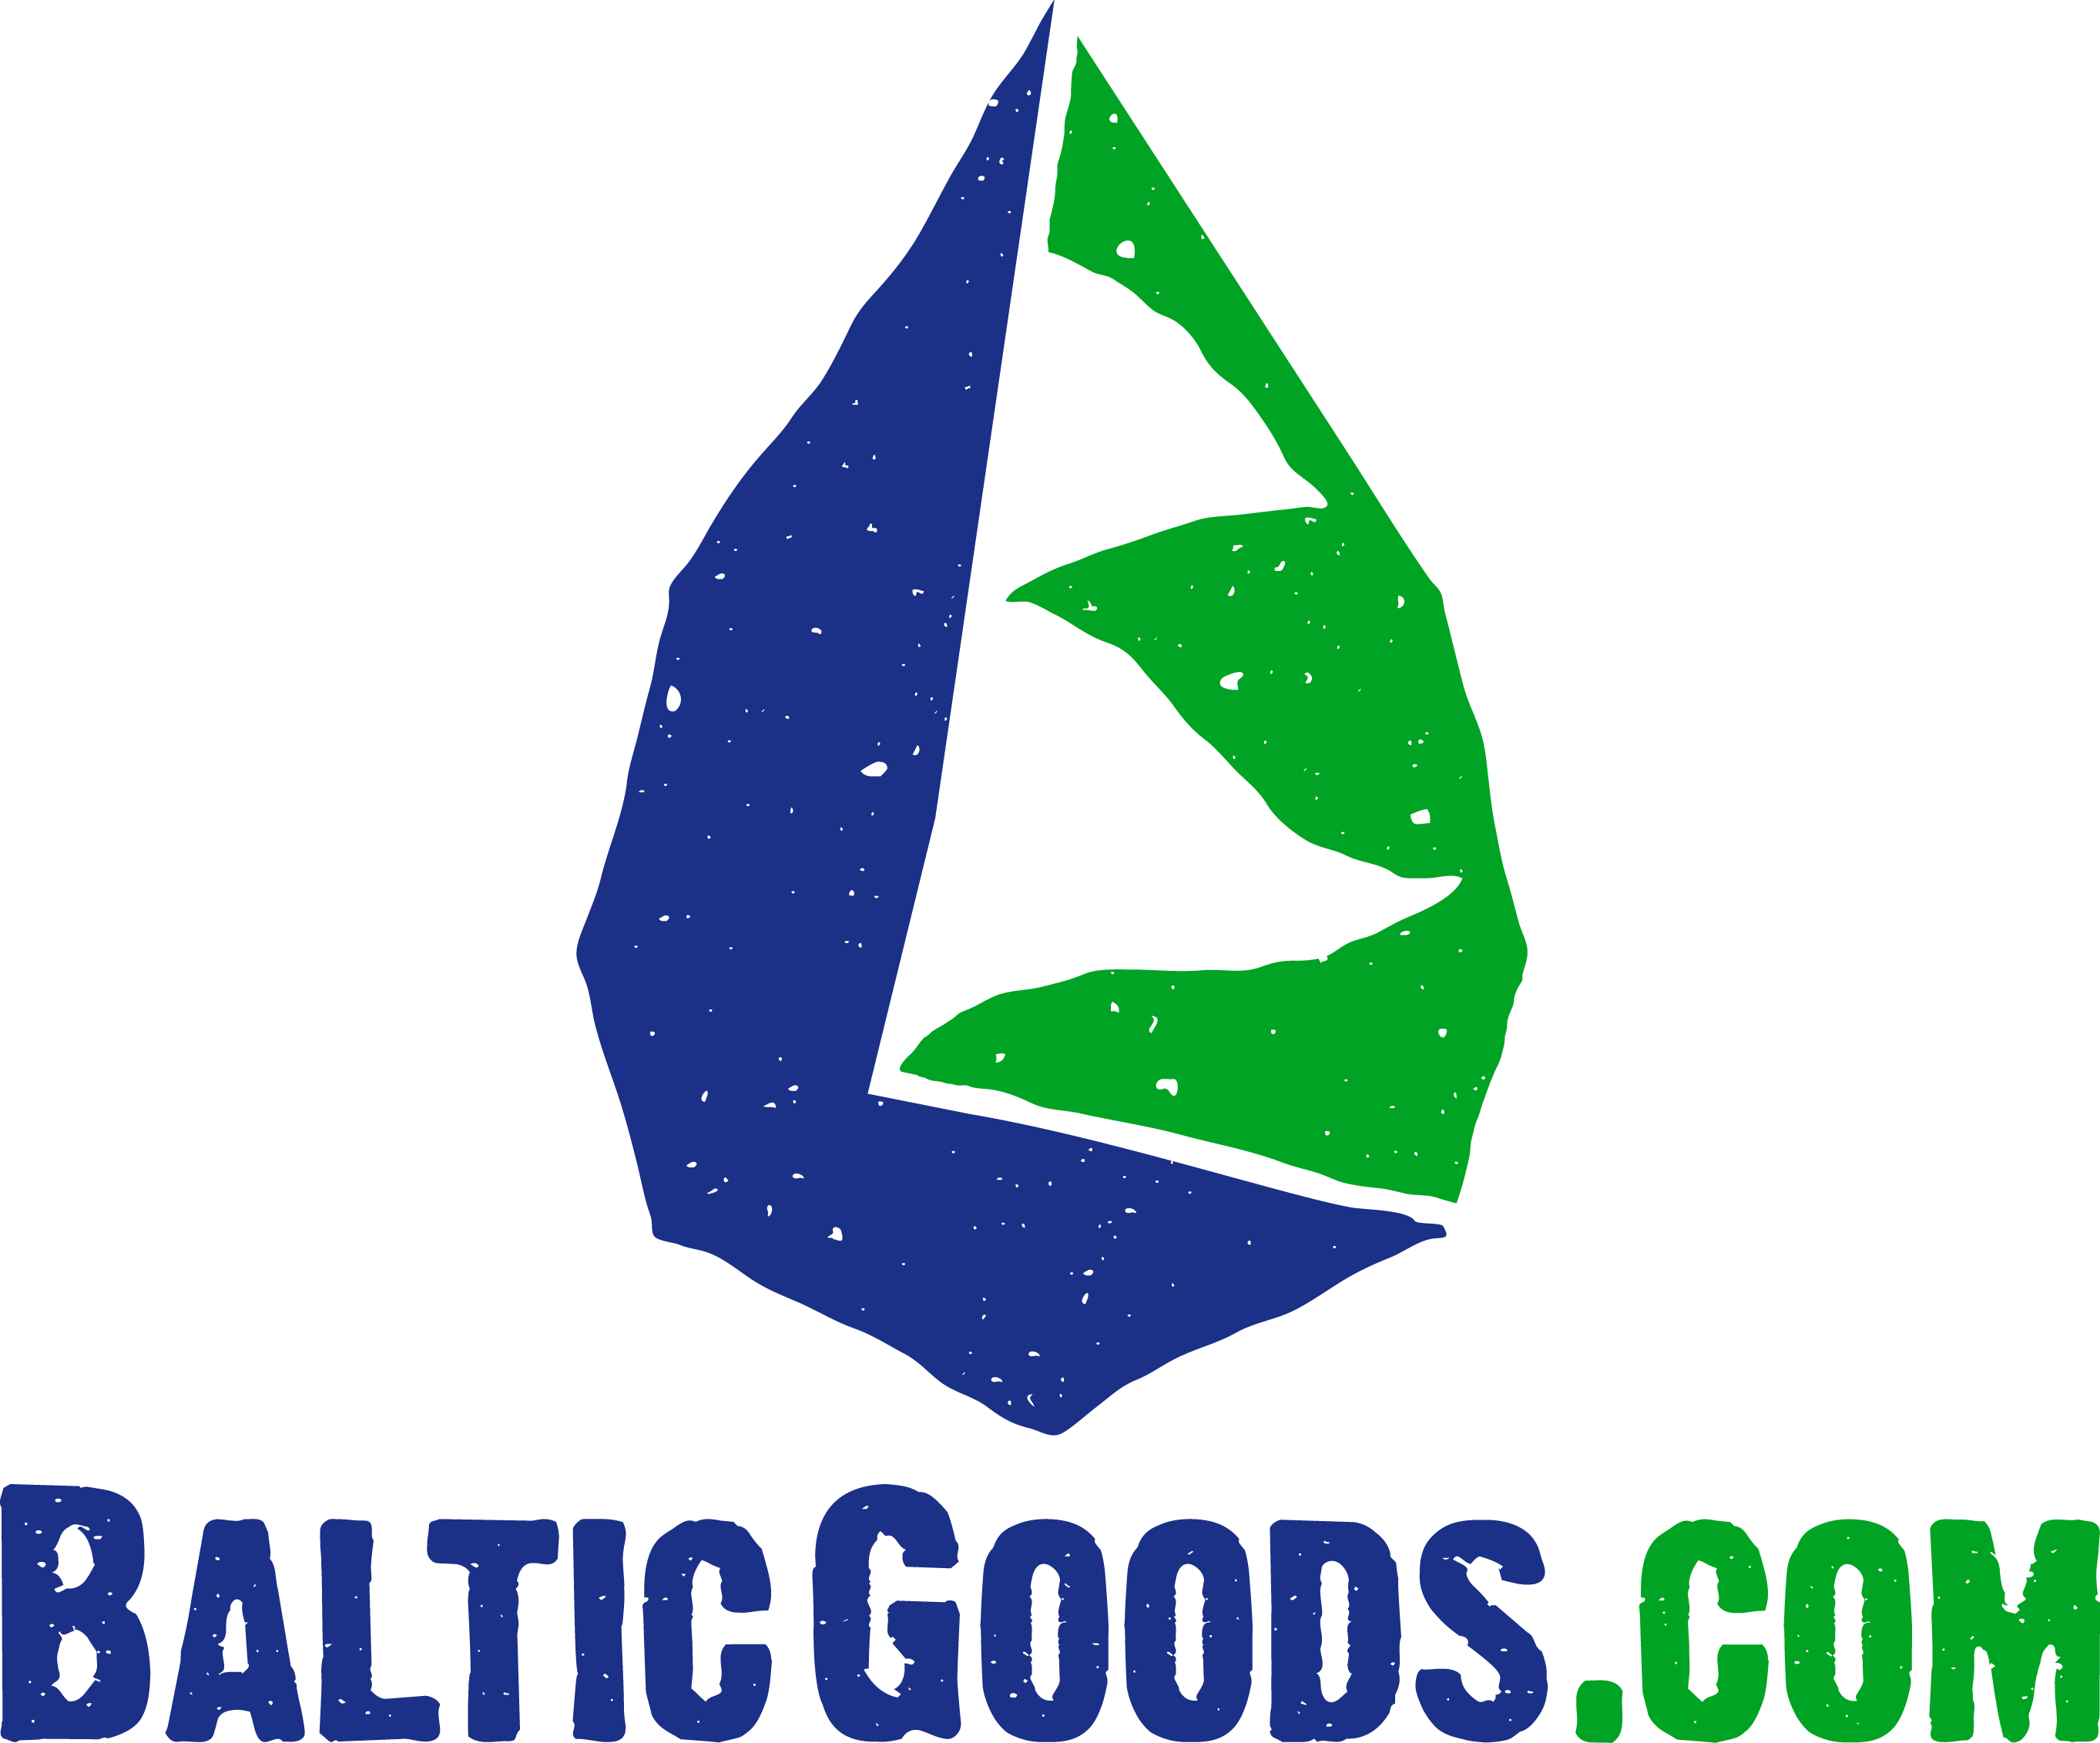 balticgoods-logo color